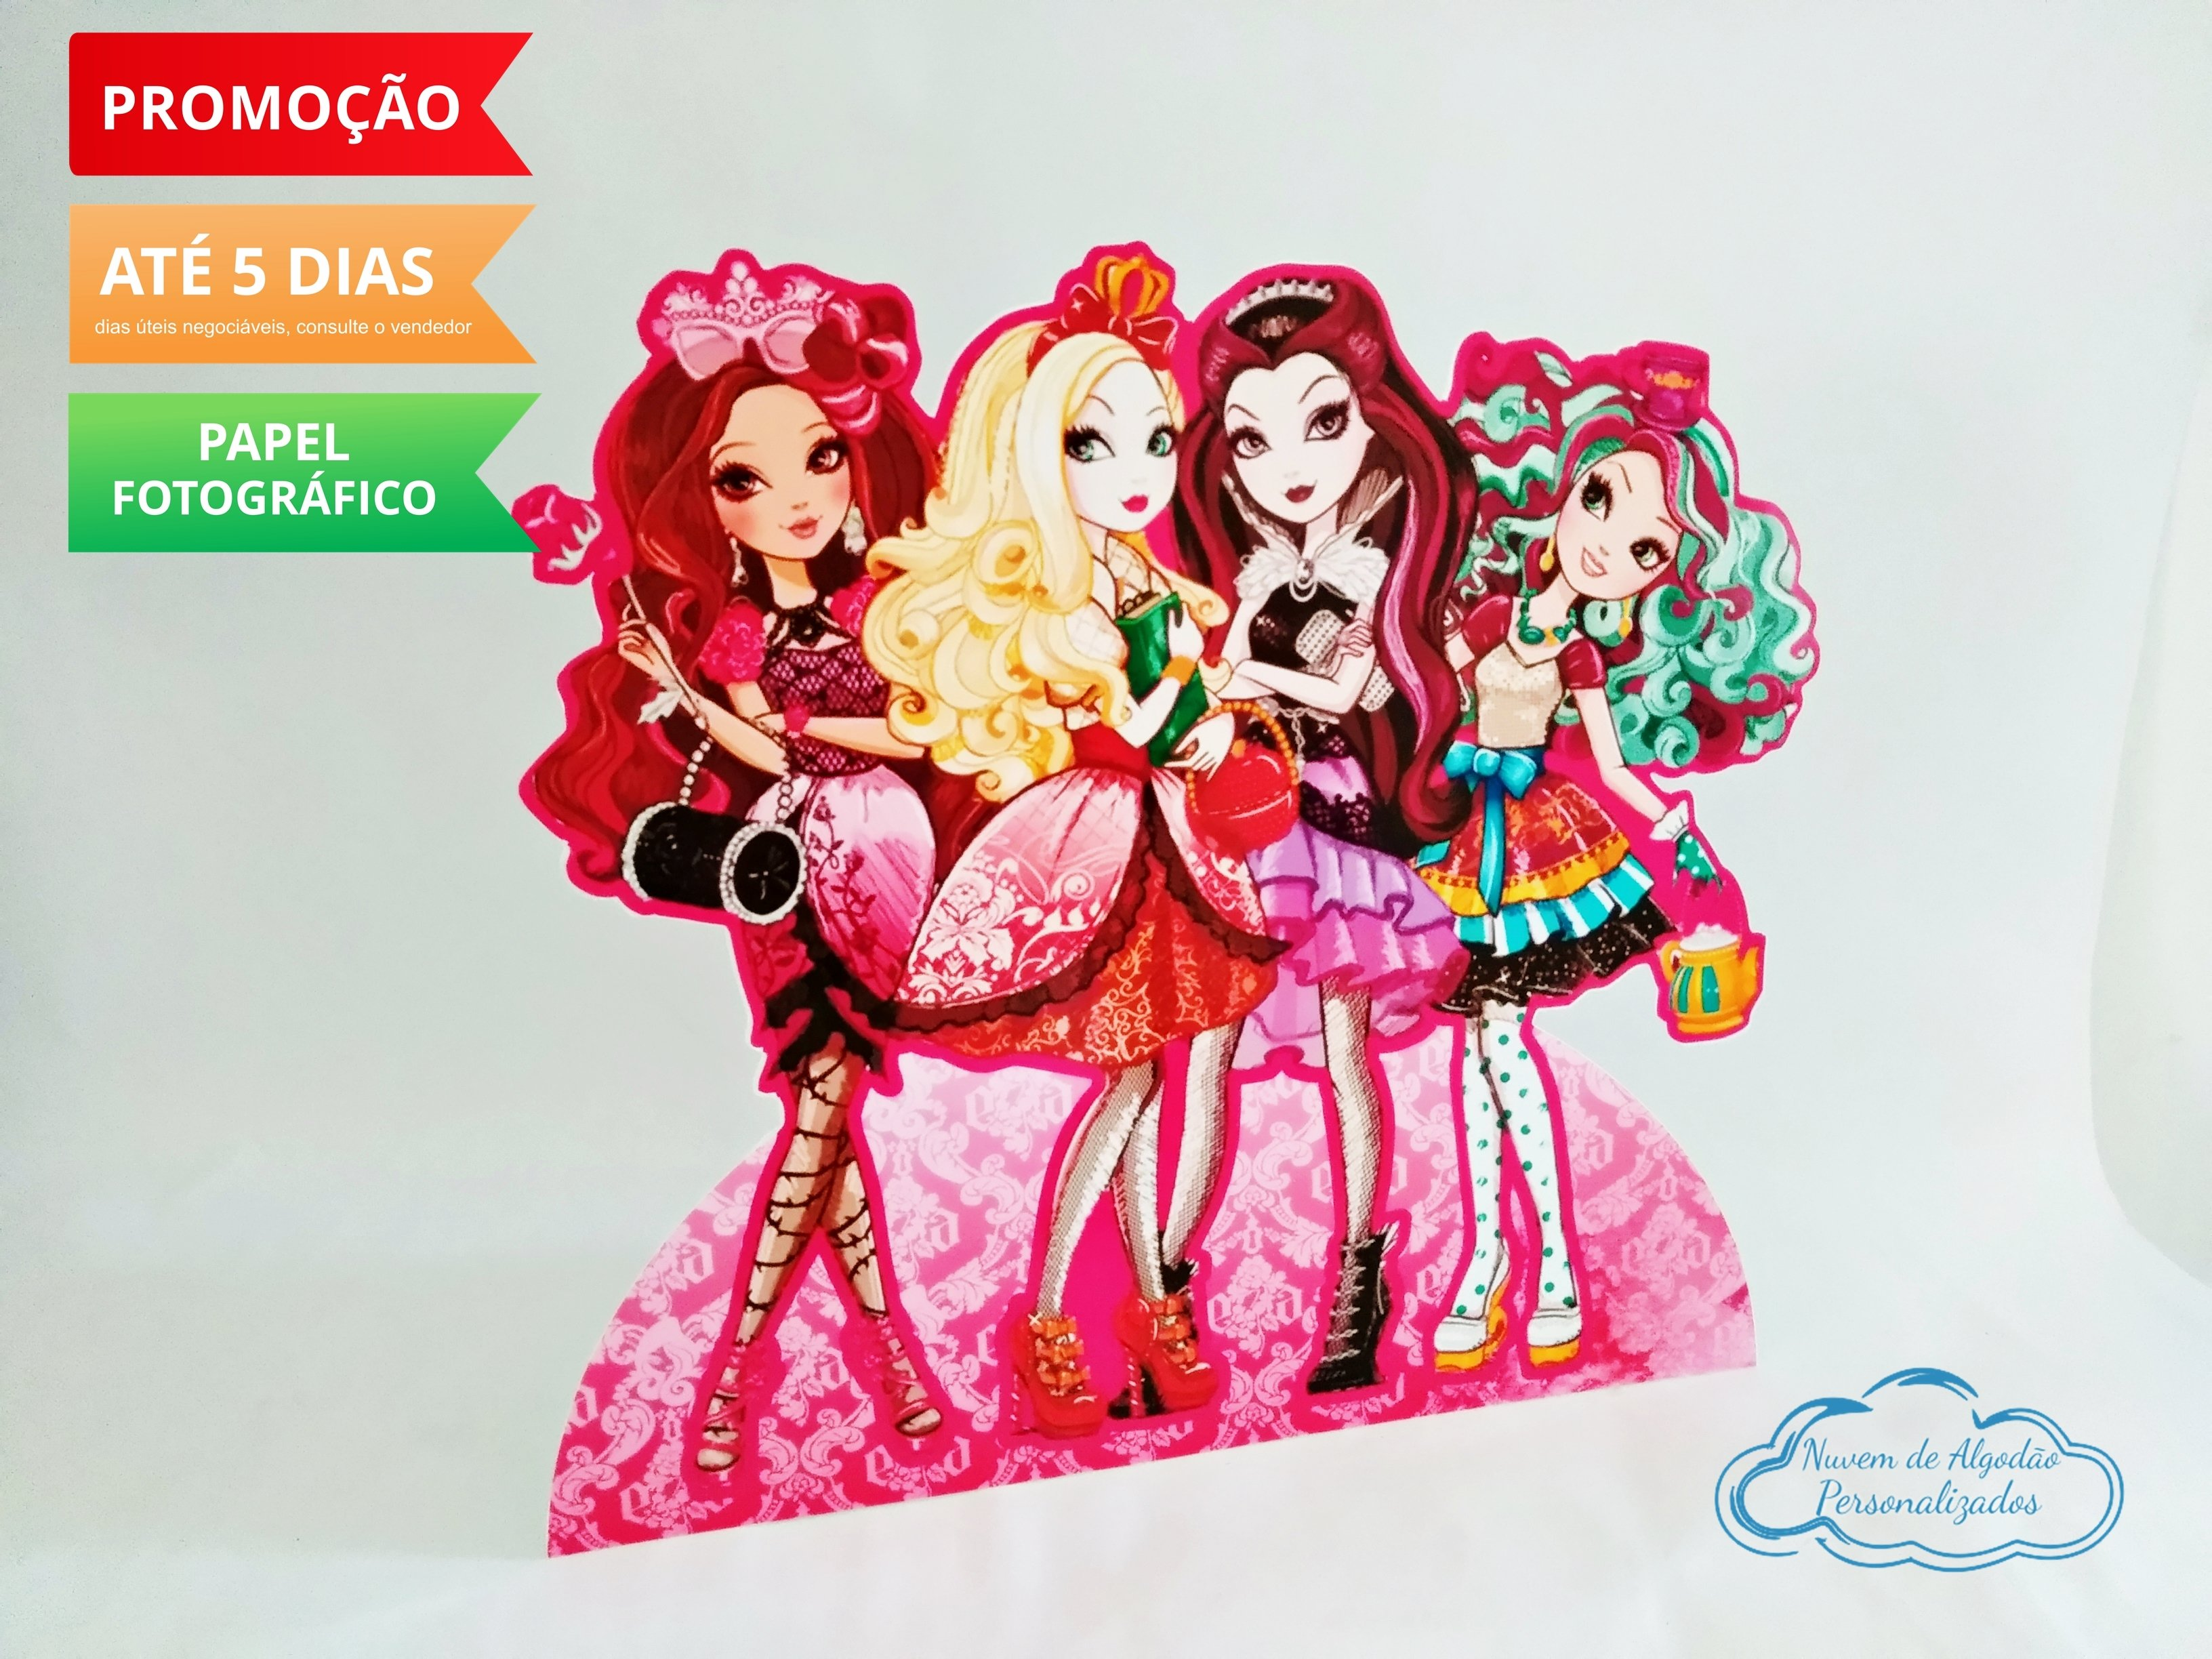 Nuvem de algodão personalizados - Display de mesa Ever after high 27cm